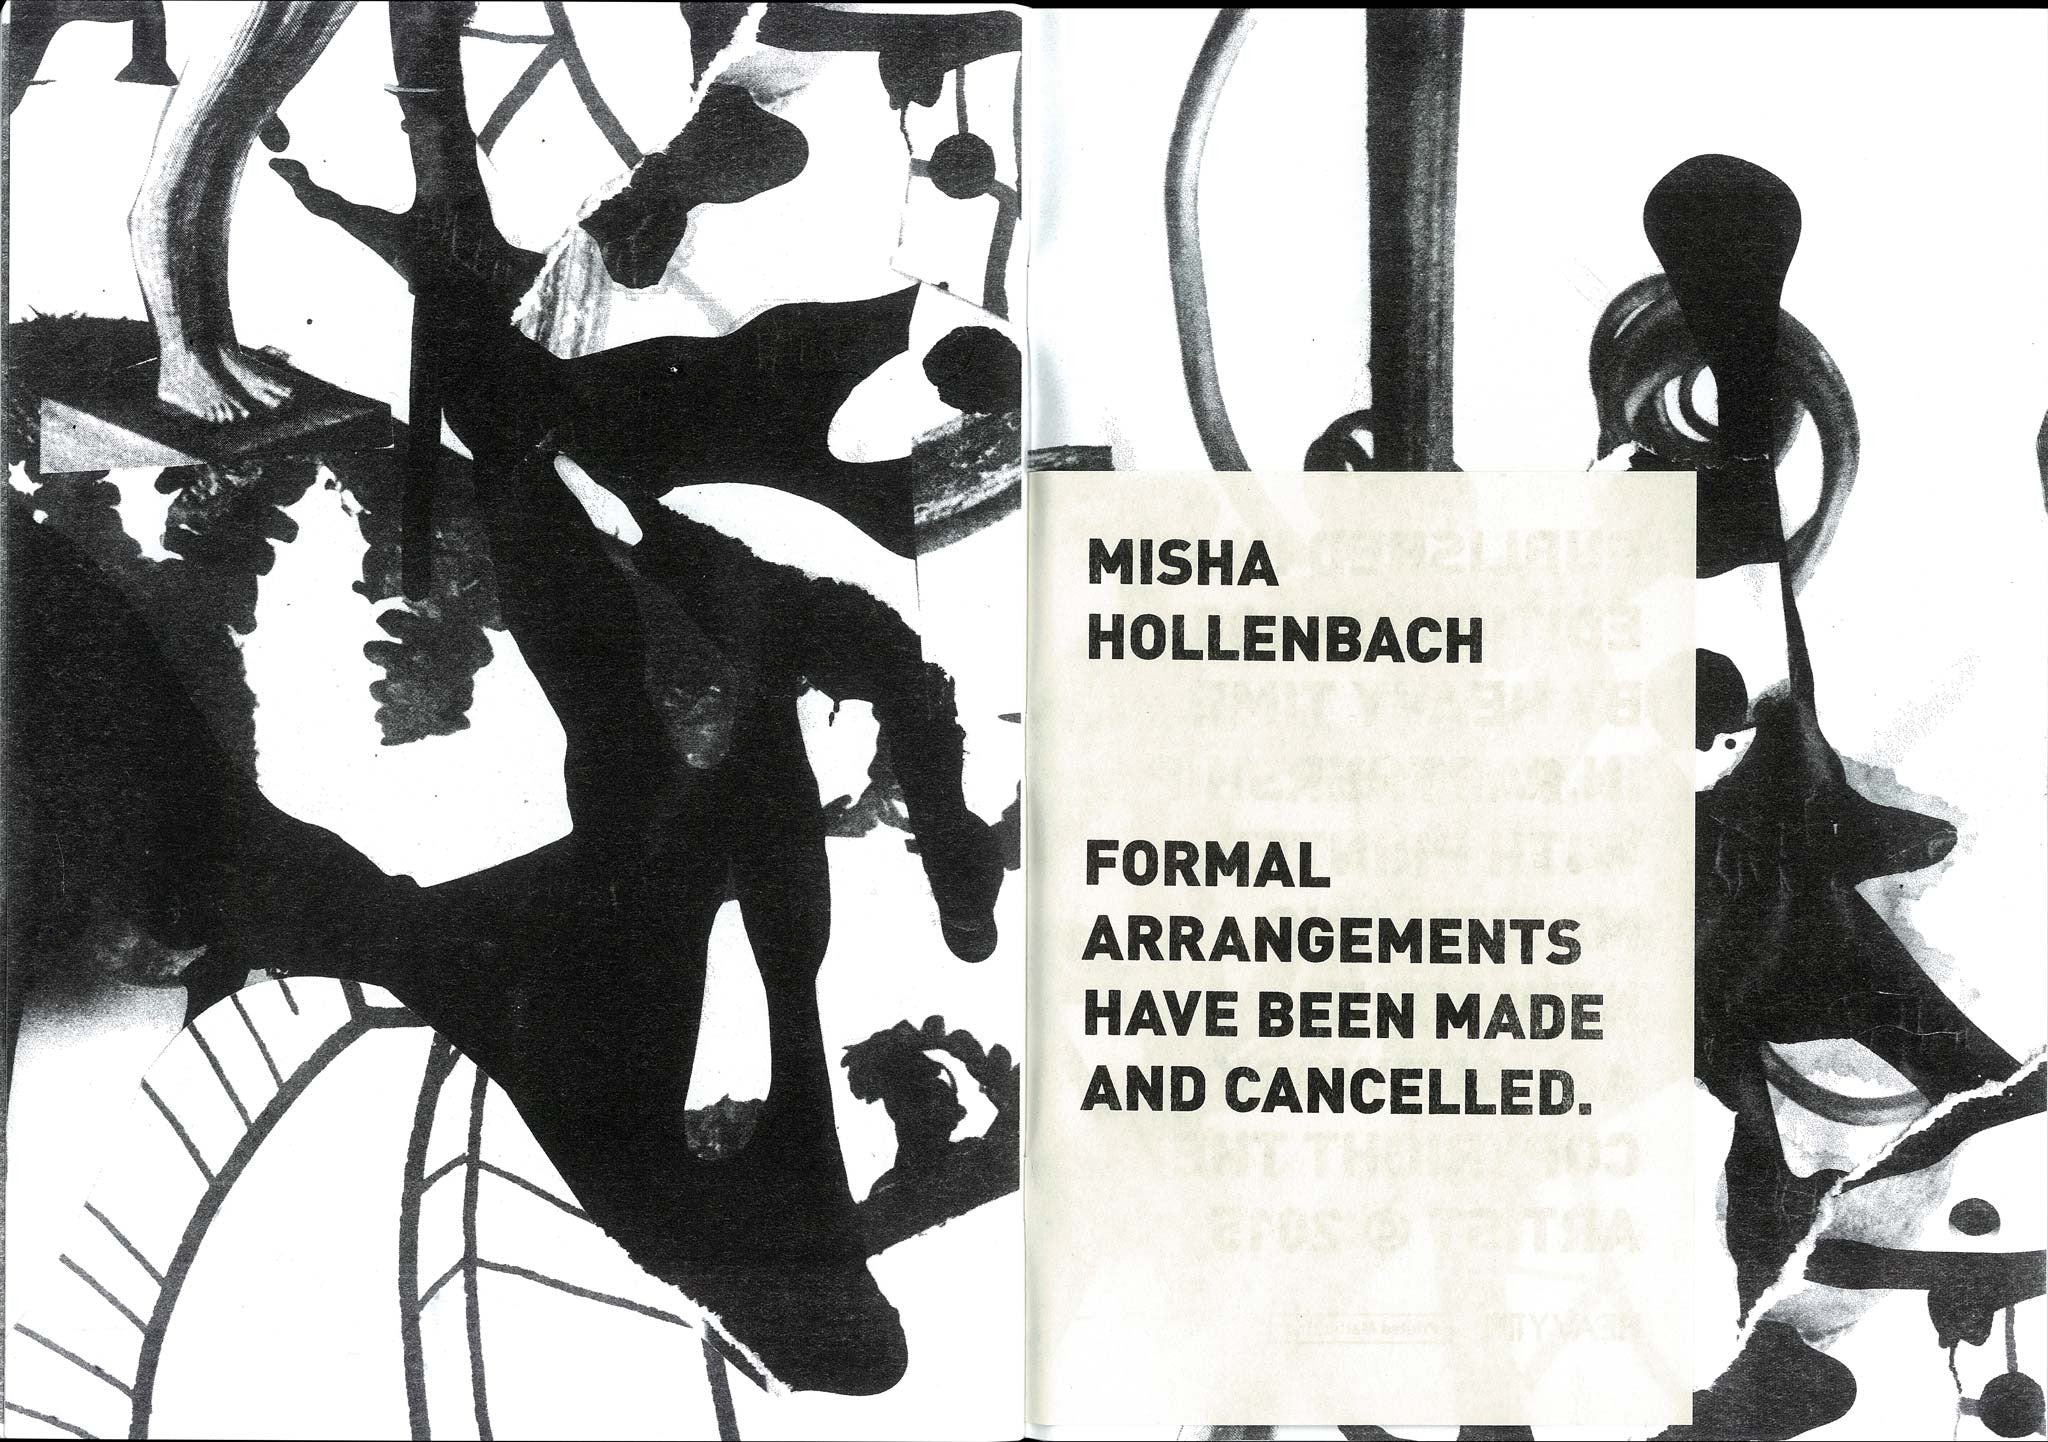 MISHA HOLLENBACH. FORMAL ARRANGEMENTS HAVE BEEN MADE AND CANCELLED.